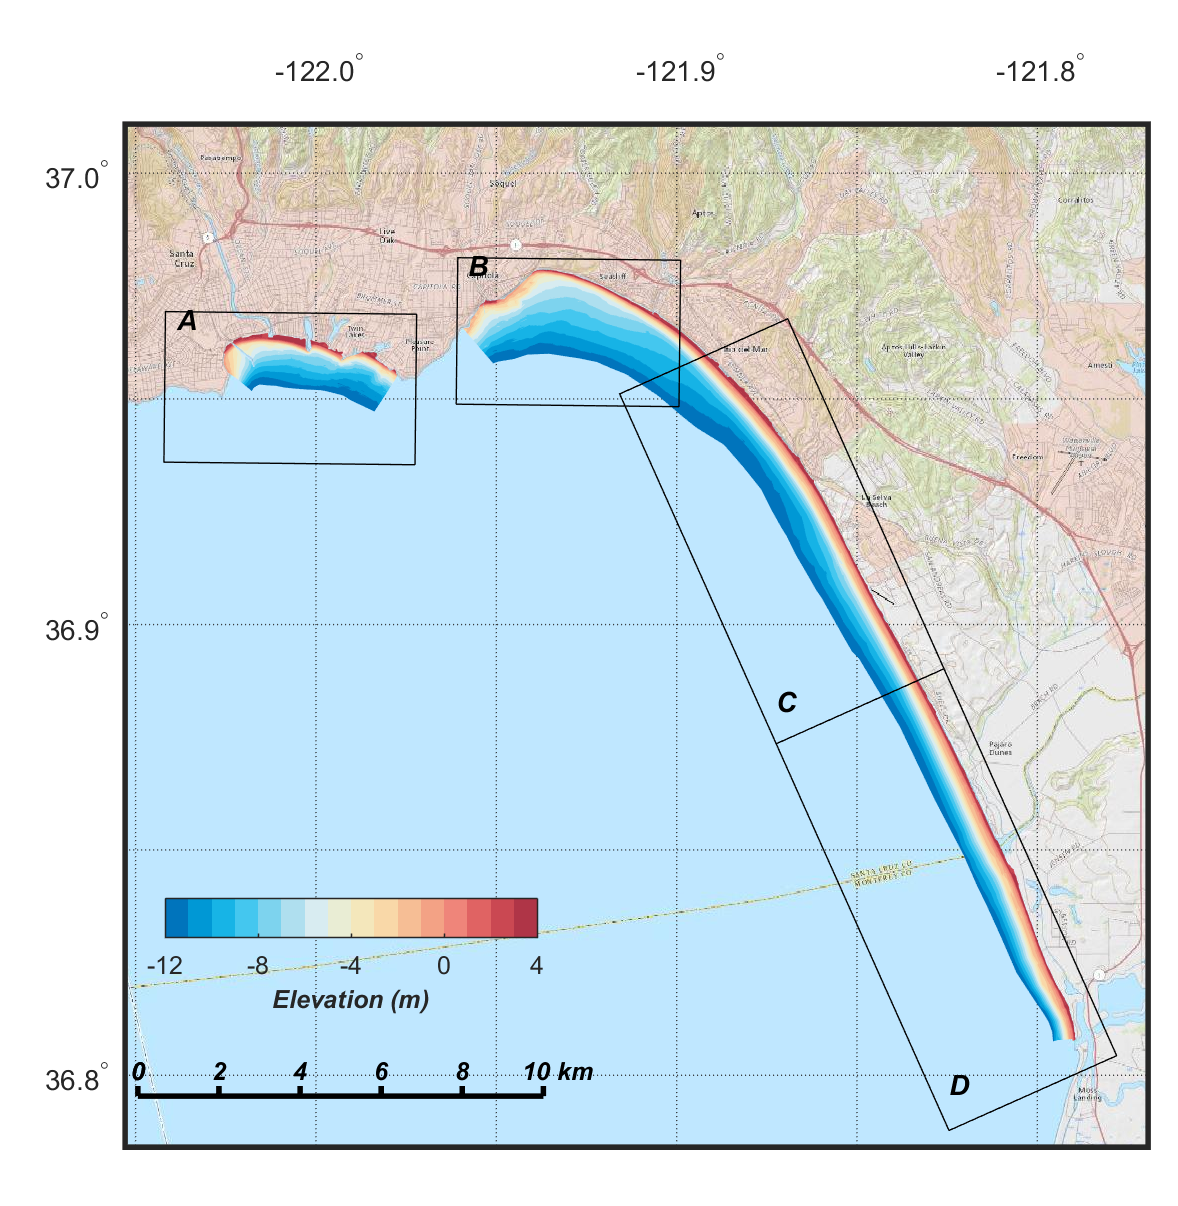 image map showing overview of digital elevation models (DEMs) of northern Monterey Bay, color-coded to show elevation